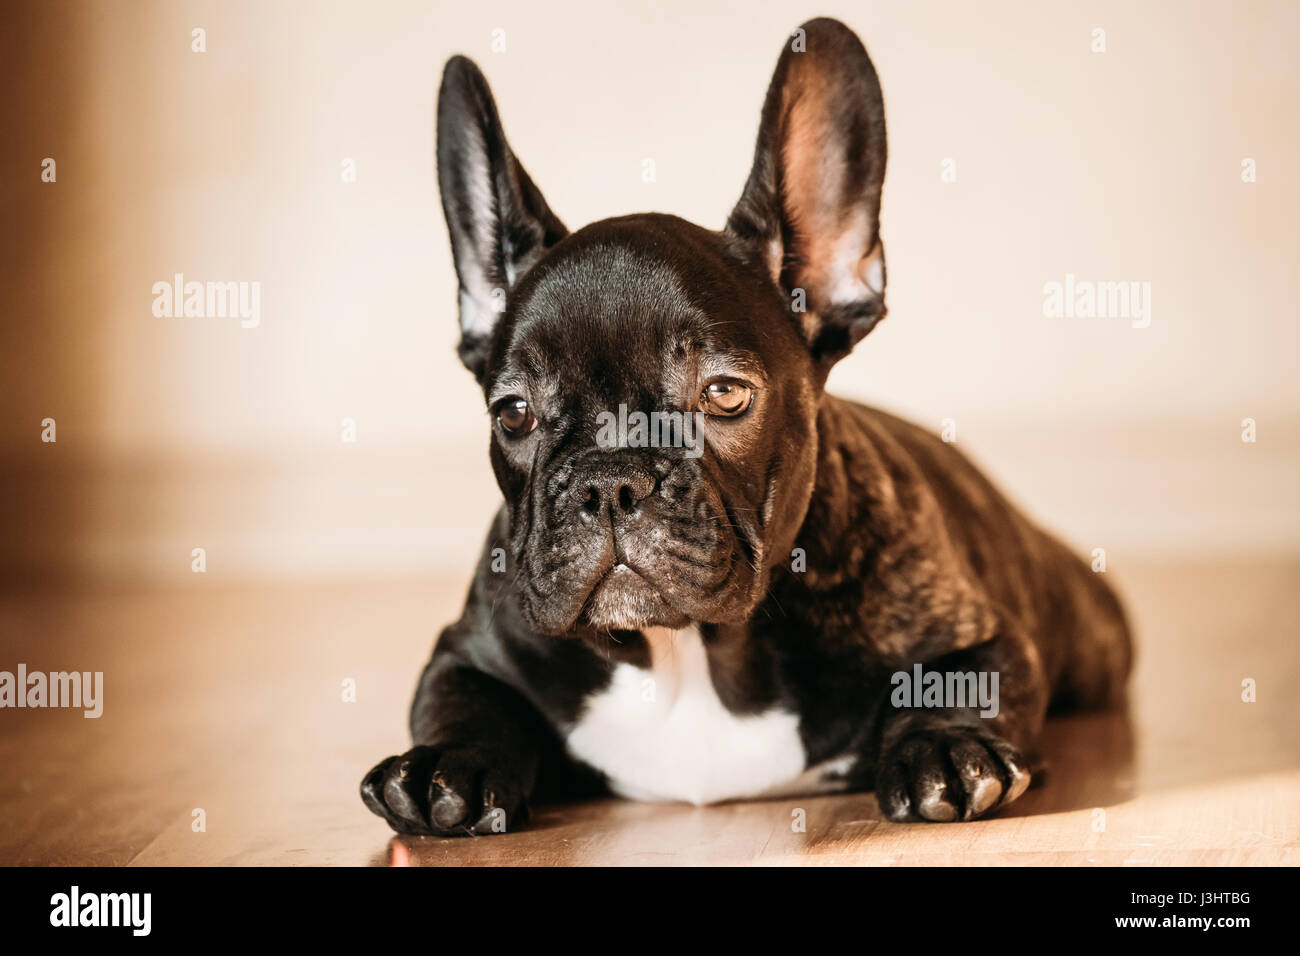 11cd0242ced8 Young Black French Bulldog Dog Puppy With White Spot Sitting On Laminate  Floor Indoor Home.